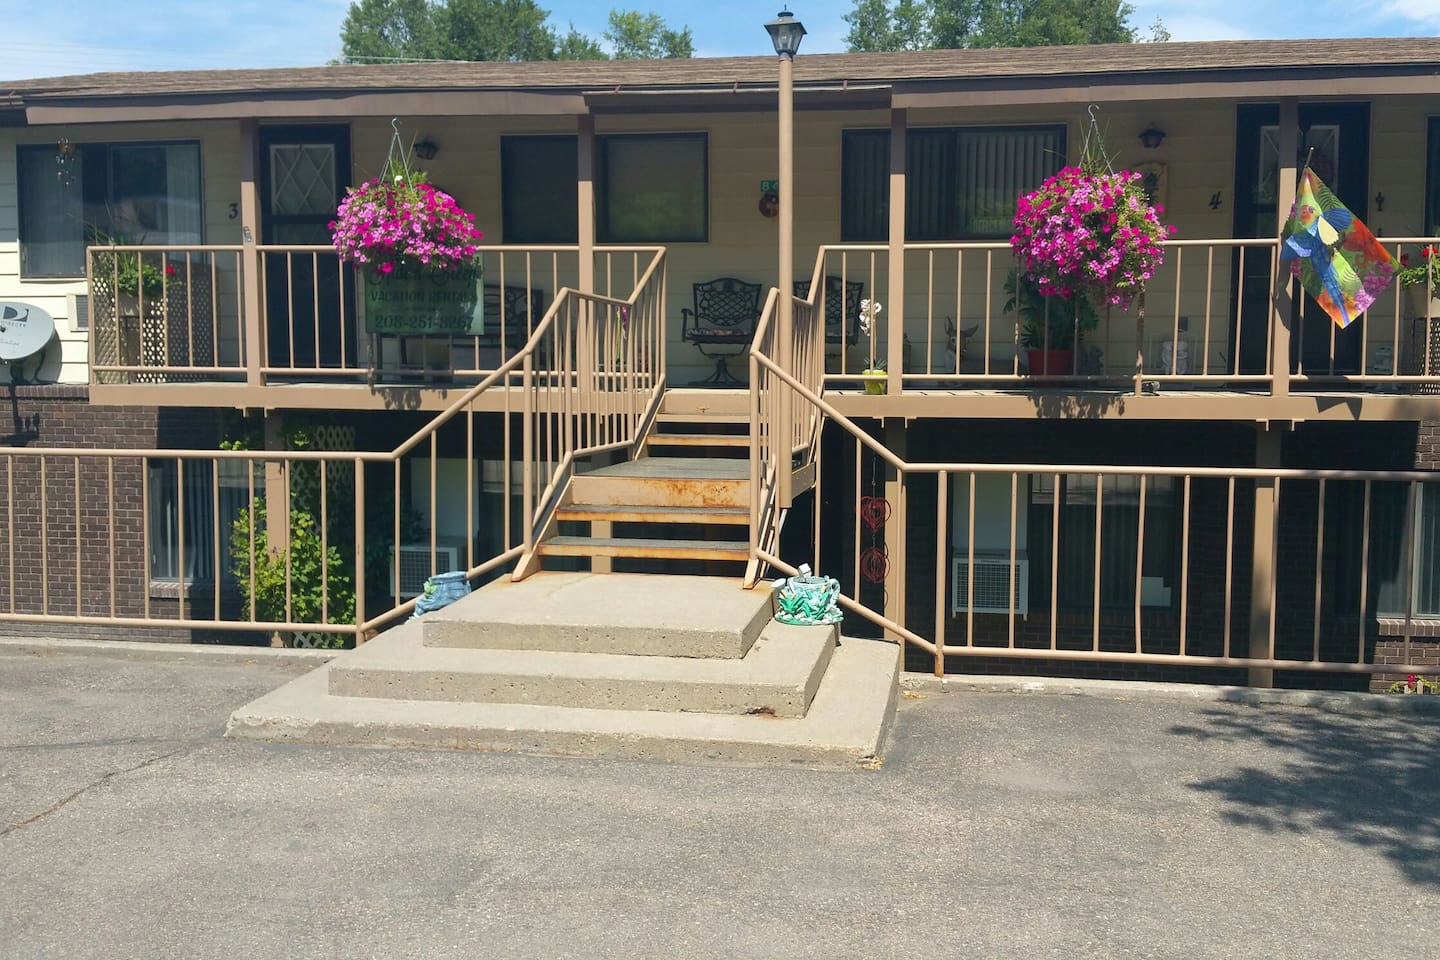 Cedar springs condos f1 townhouses for rent in lava hot springs cedar springs condos f1 townhouses for rent in lava hot springs idaho united states mightylinksfo